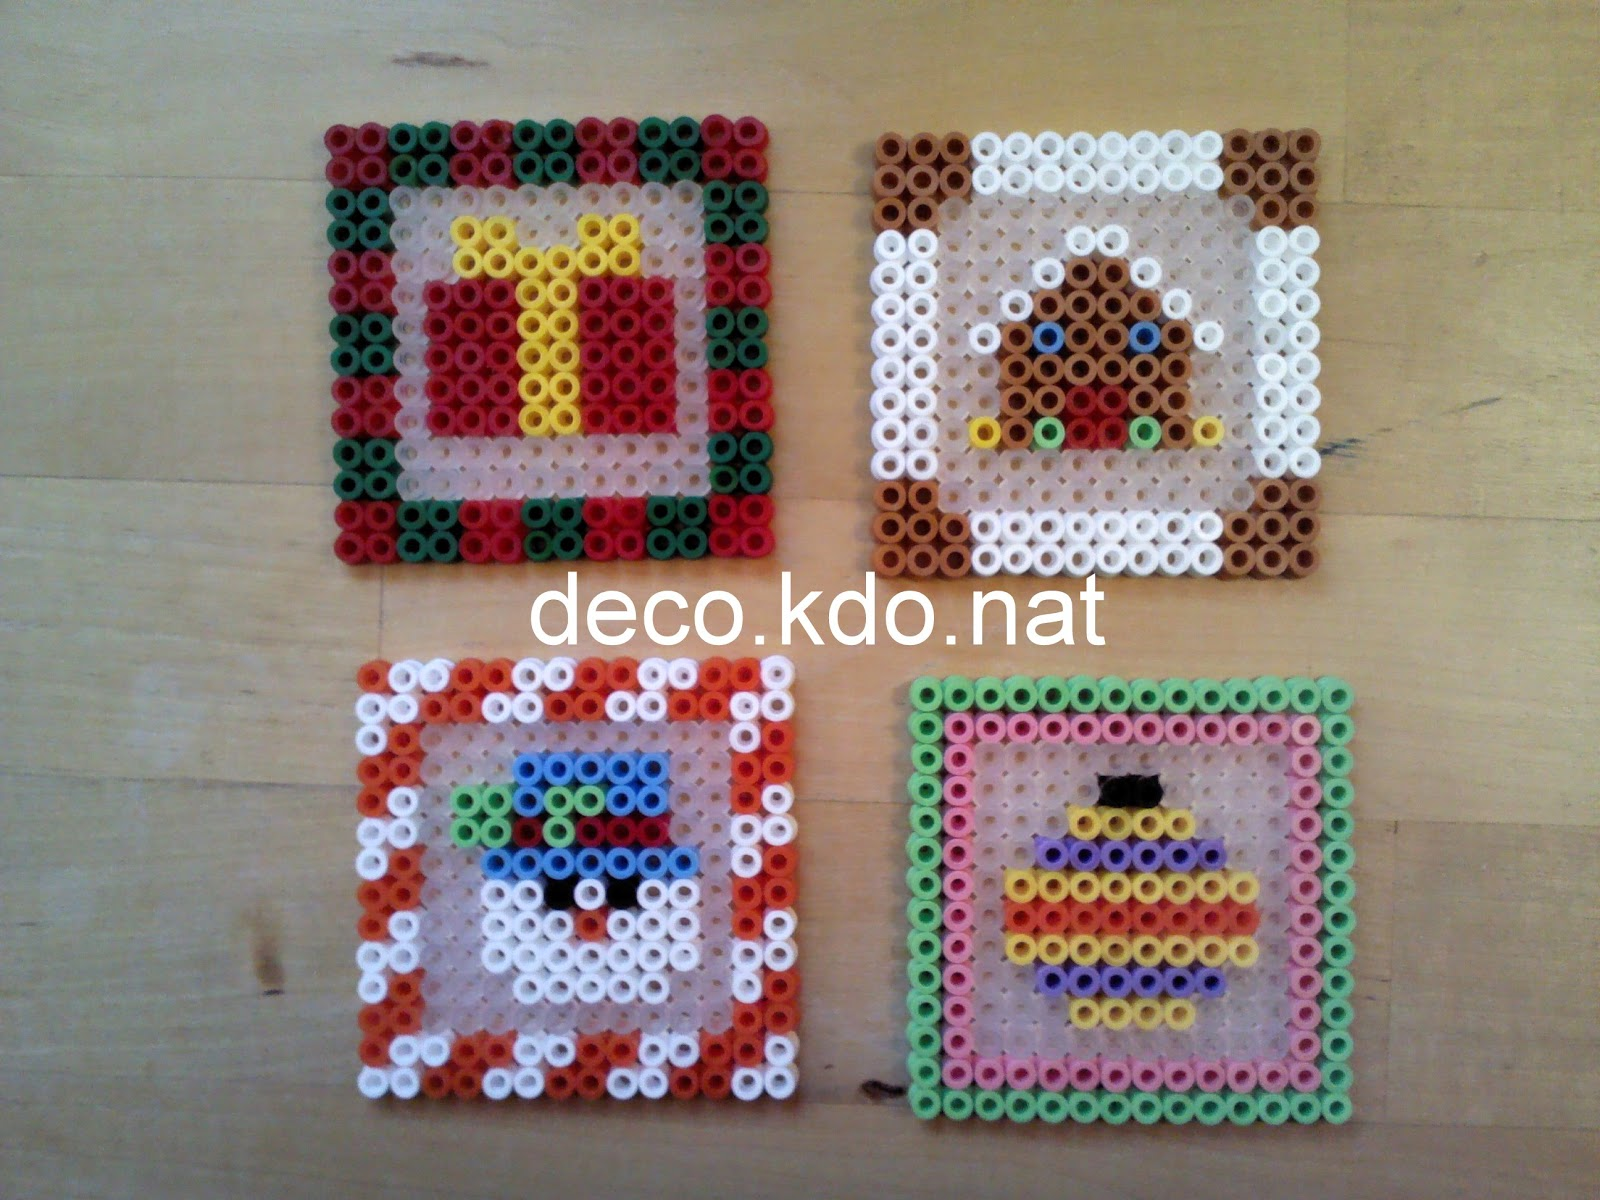 Deco kdo nat perles hama d co de table no l - Perle hama noel ...